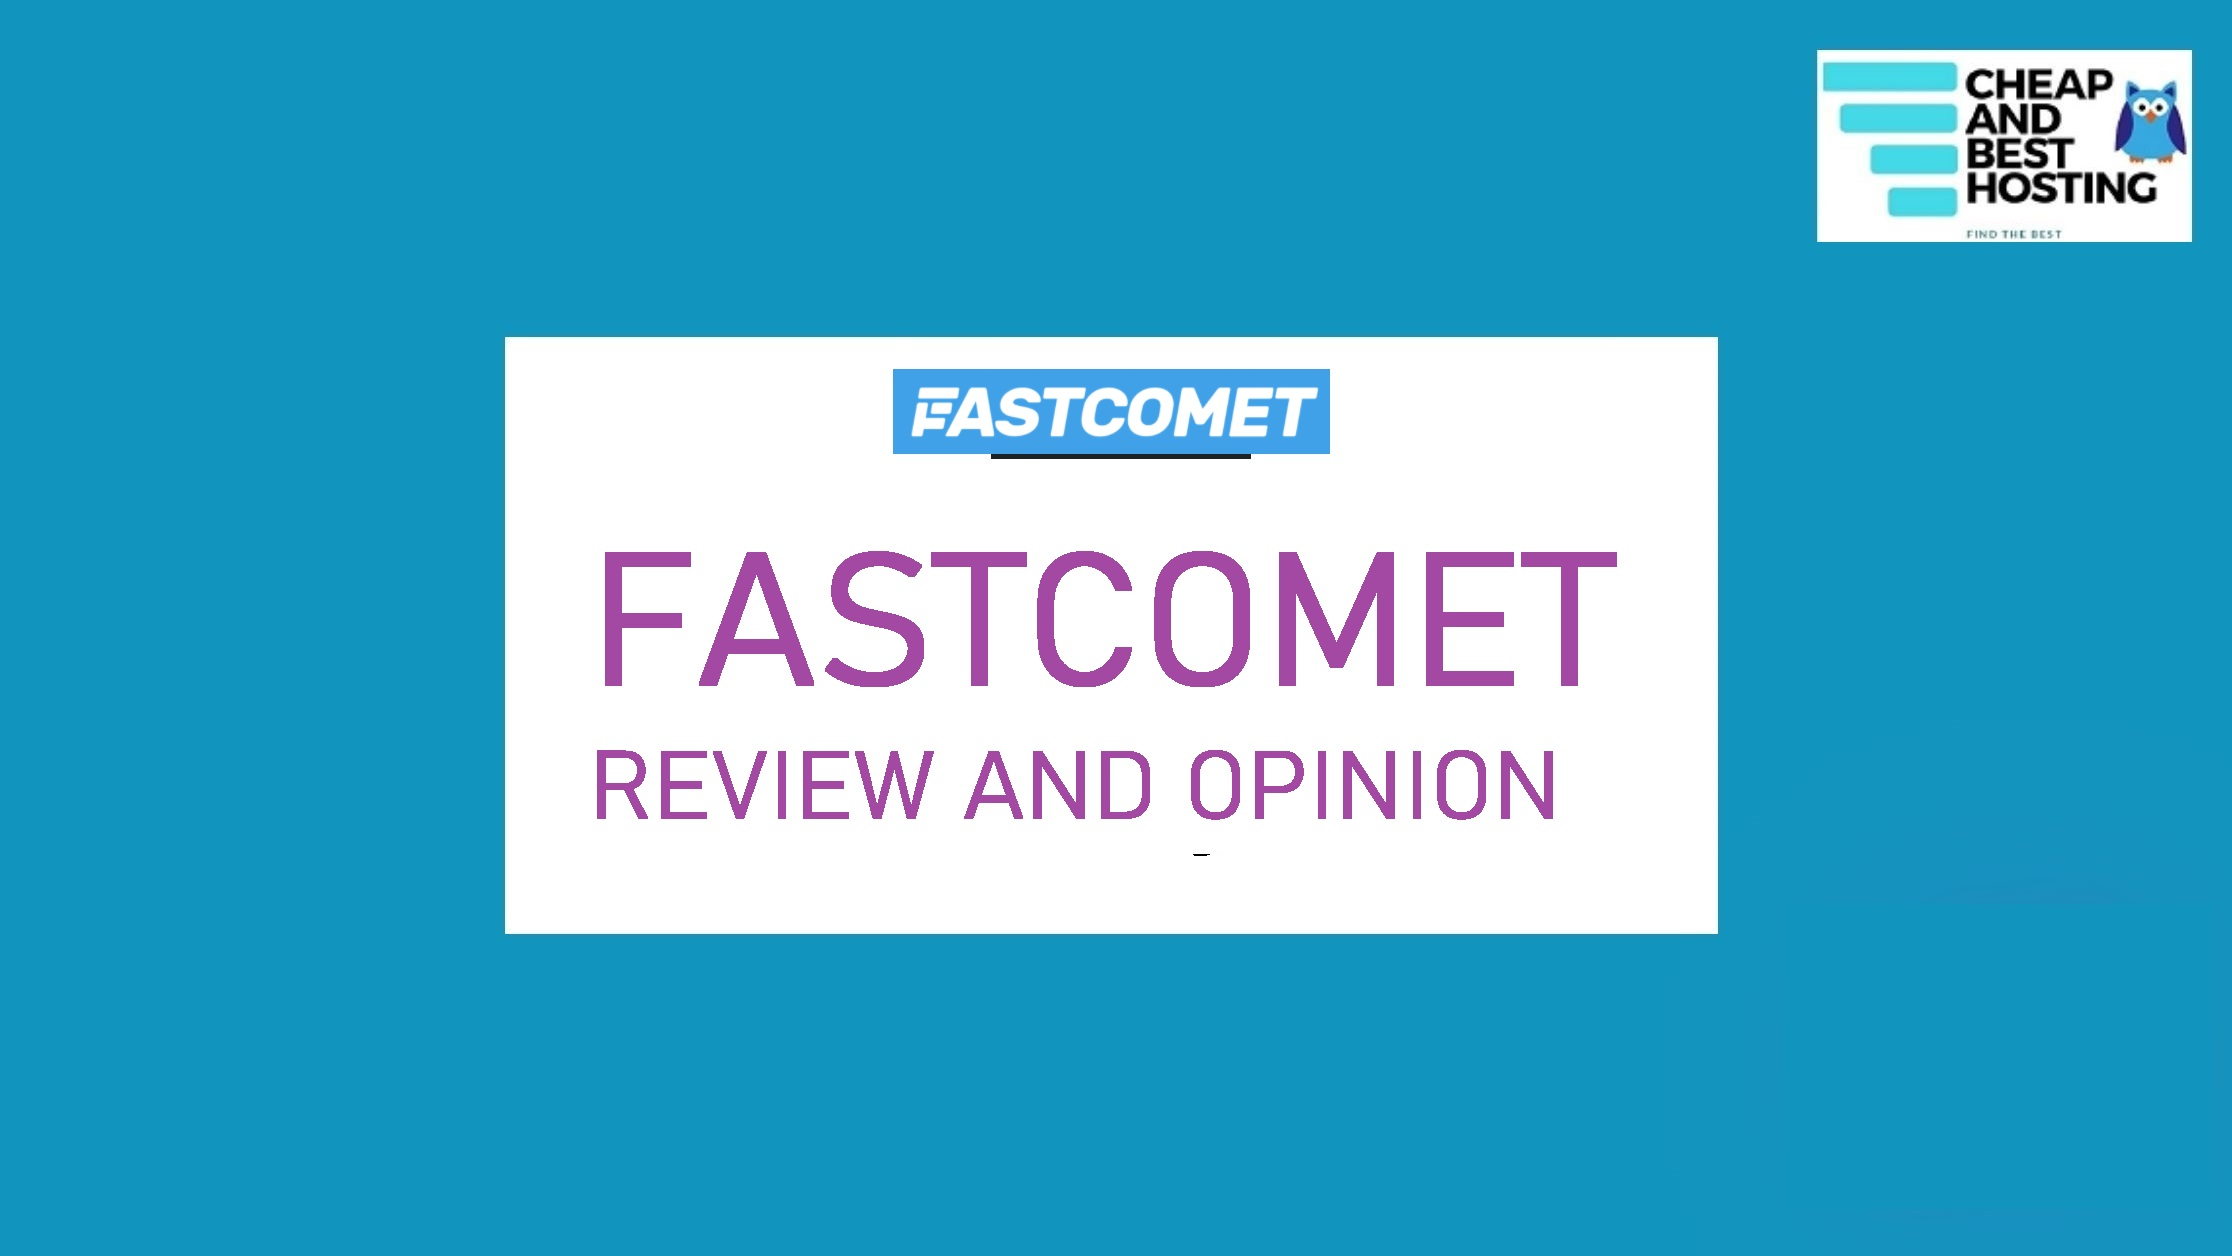 FASTCOMET REVIEW AND OPINION